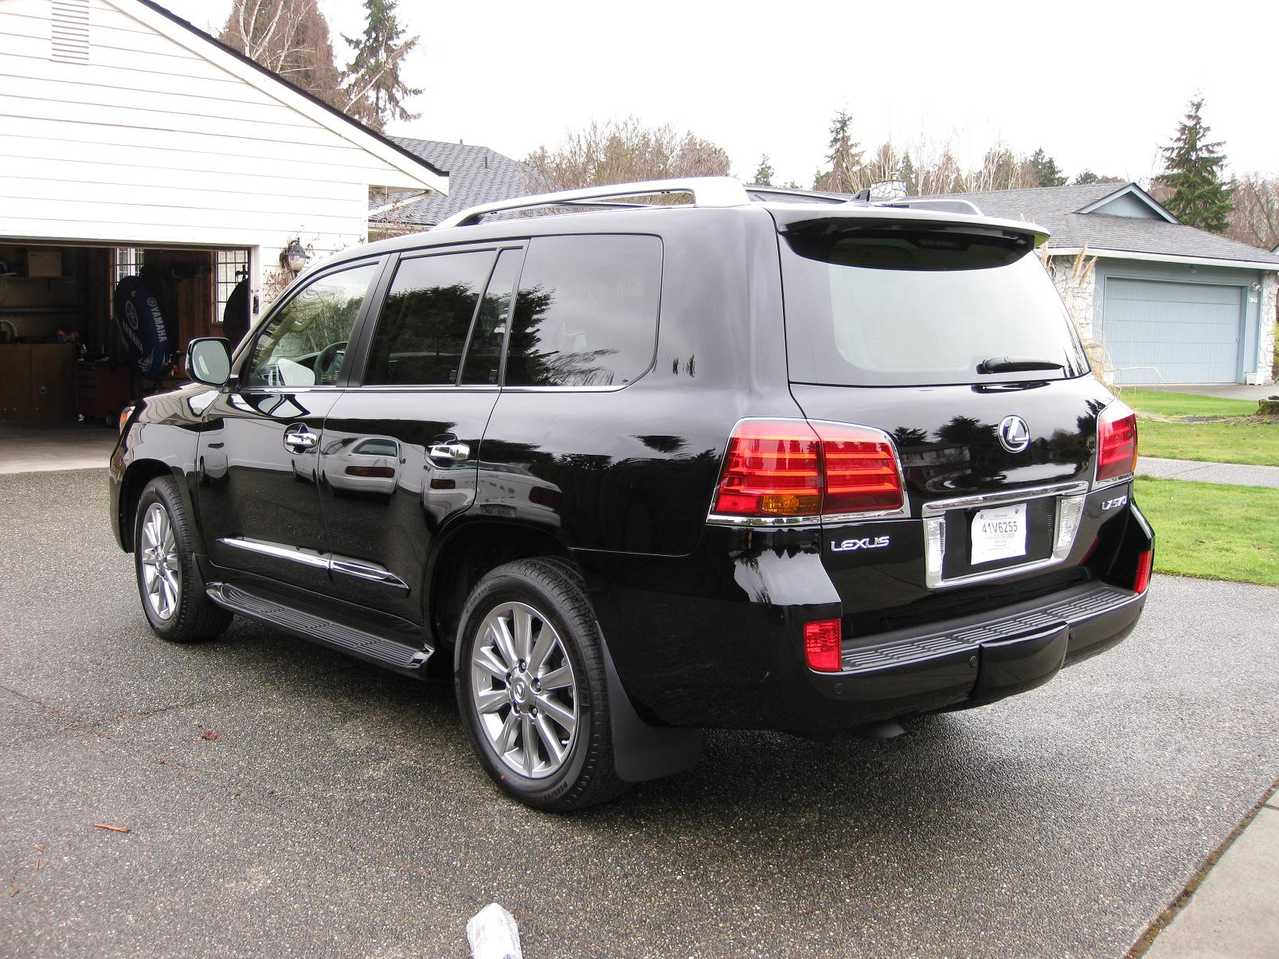 2009 lexus lx570 photos 5 7 gasoline automatic for sale. Black Bedroom Furniture Sets. Home Design Ideas